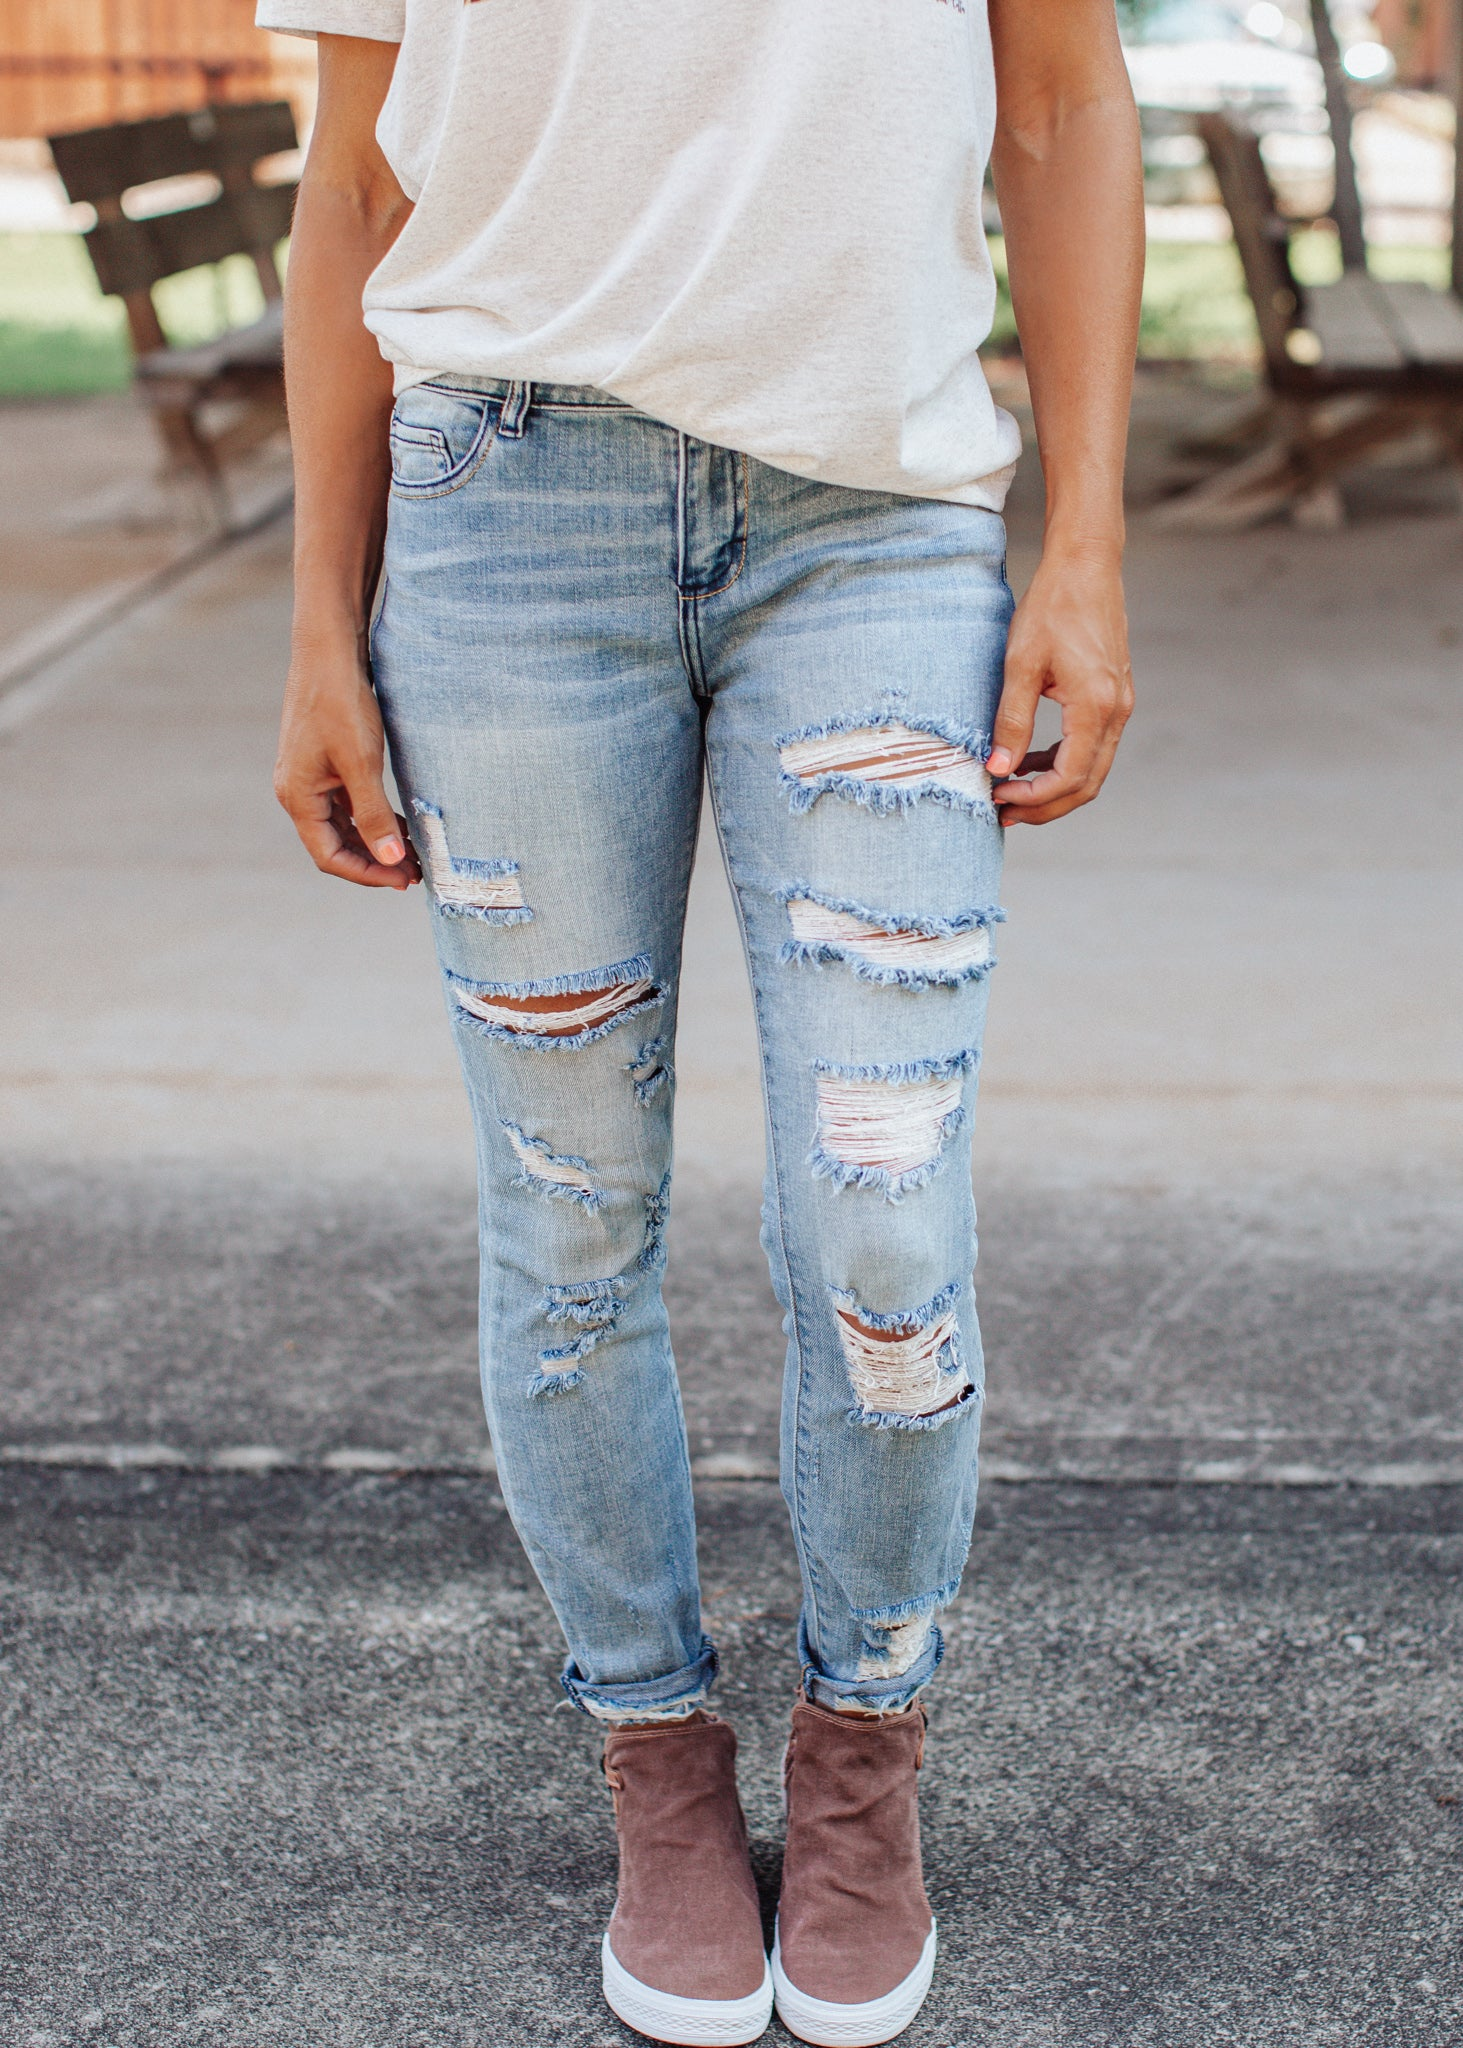 Bobby Distressed Jeans (1-13)